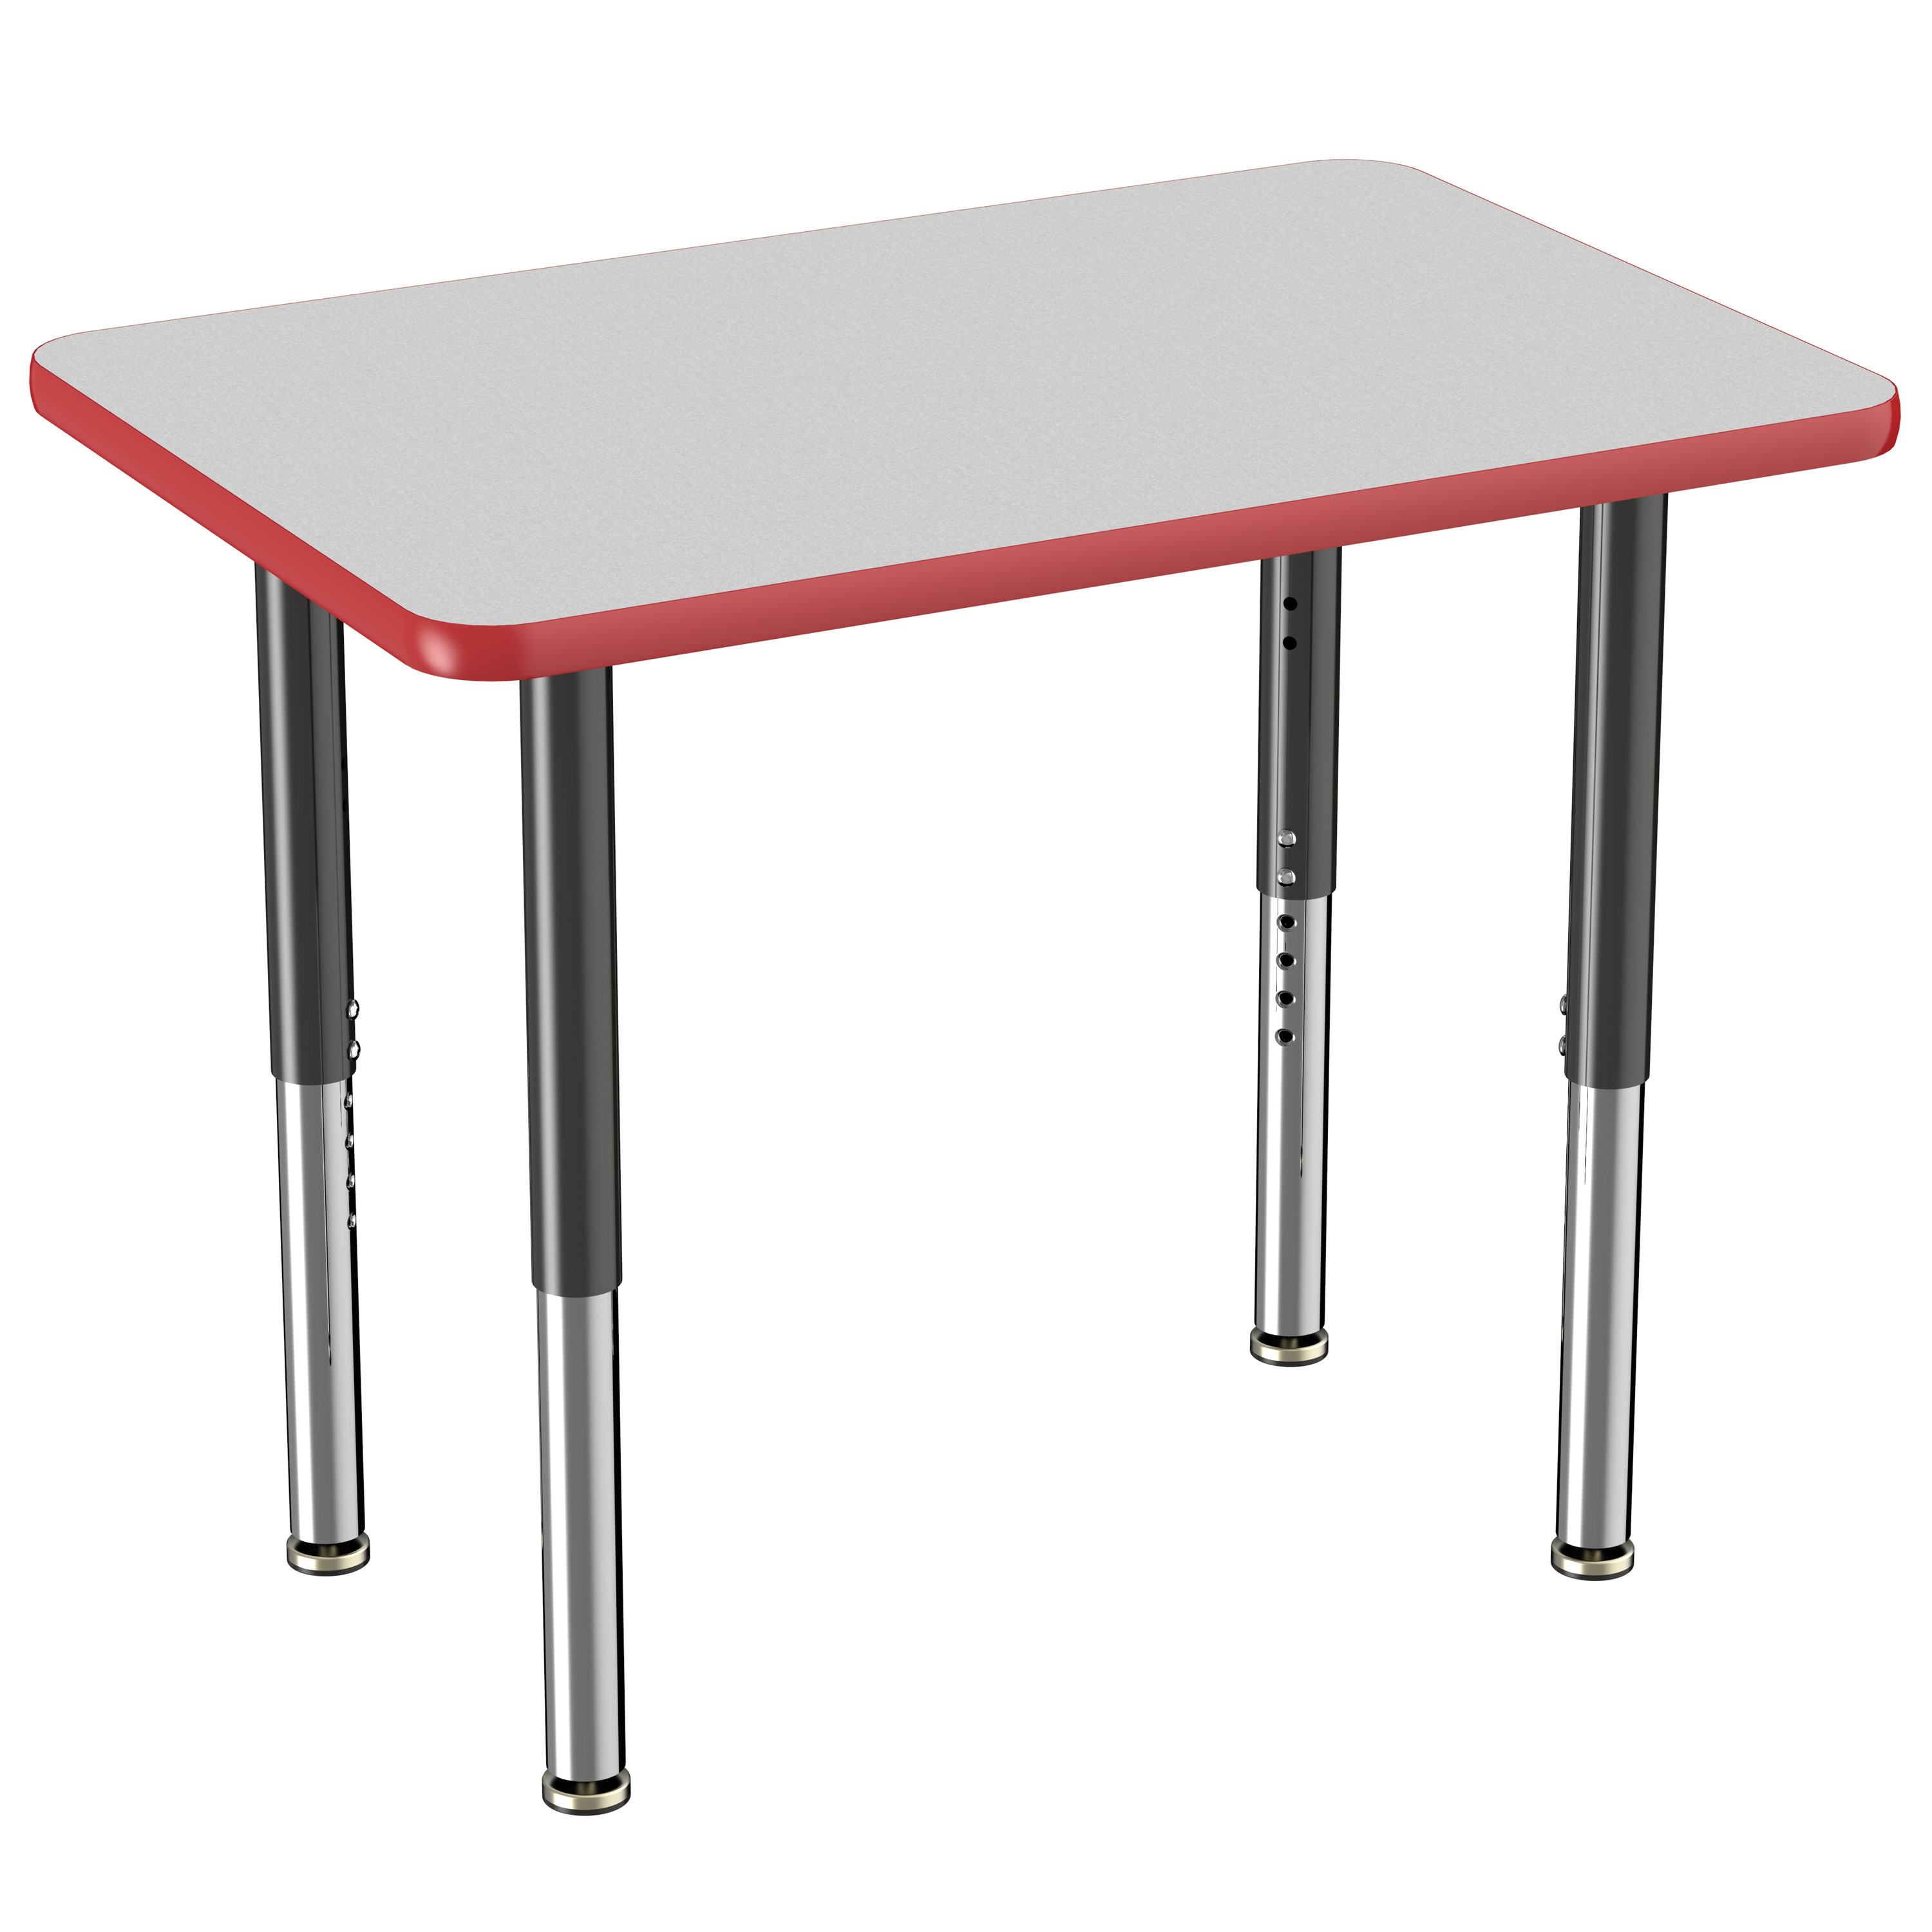 ECR4Kids 24in x 36in Rectangle Premium Thermo-Fused Adjustable Activity Table Maple/Maple/Silver - Super Leg